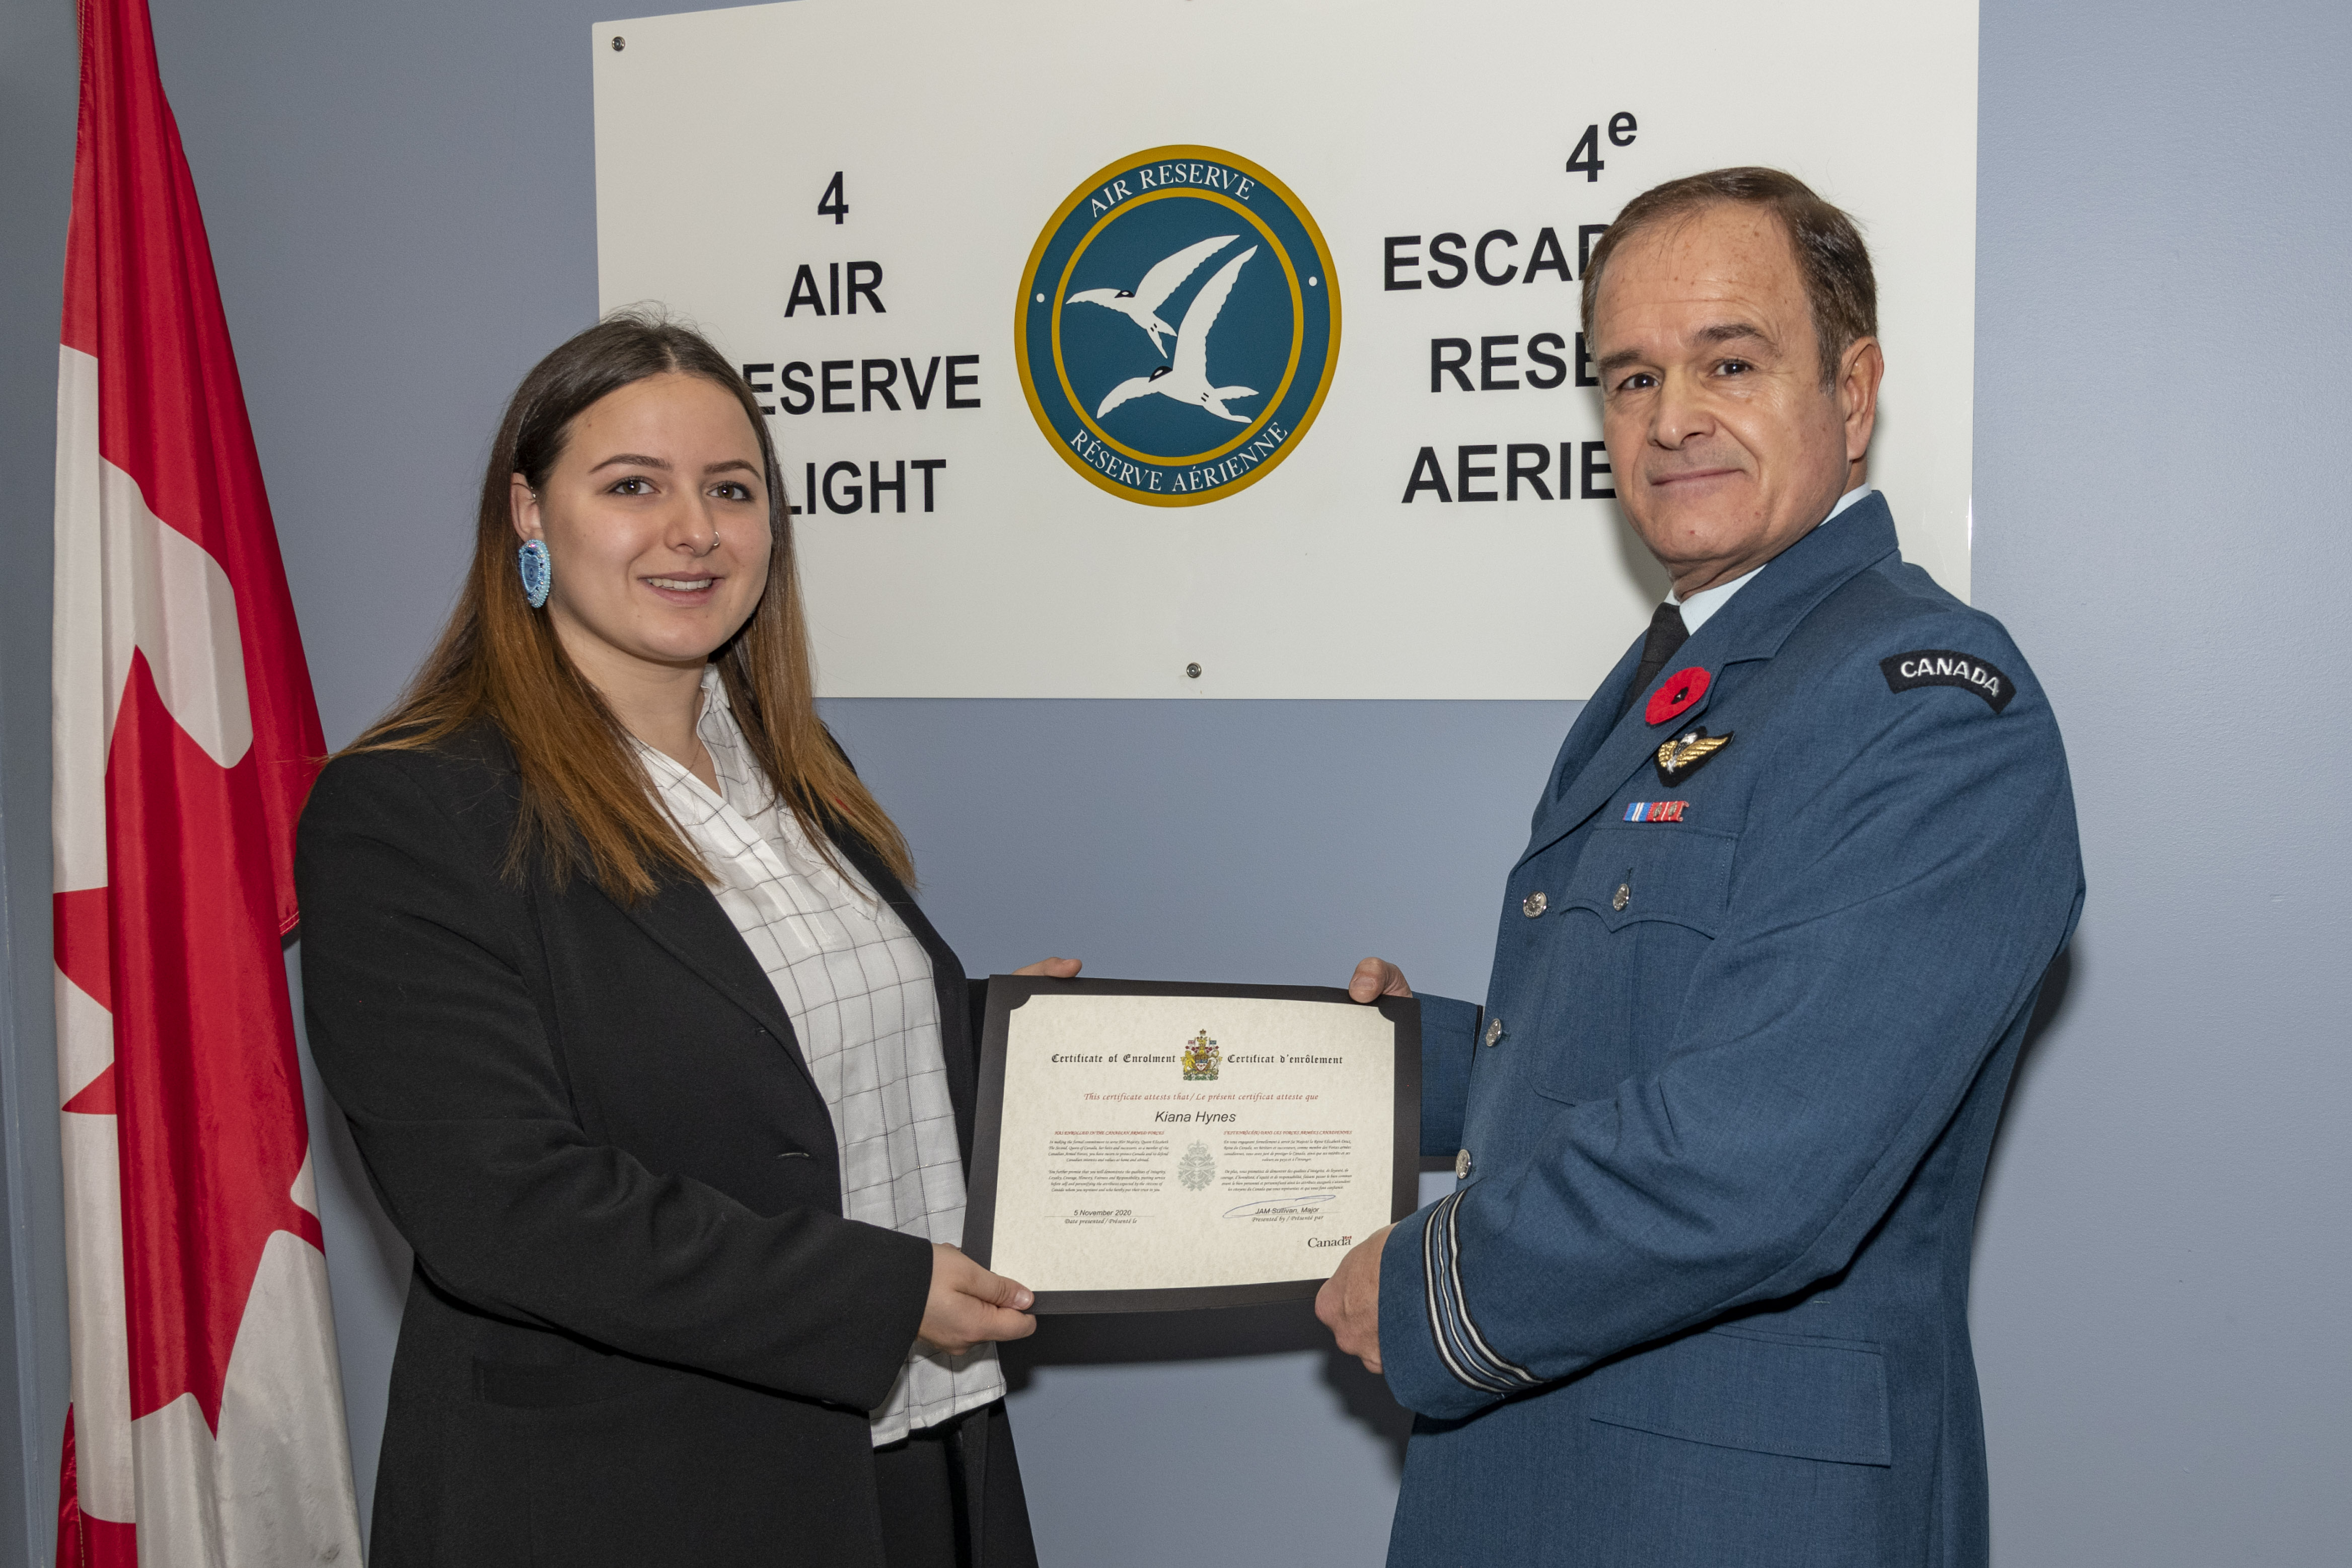 Aviator Kiana Hynes was enrolled in the RCAF Reserve at 4 Wing with Major John Sullivan, 4 Wing Air Reserve Flight Commander (at right).